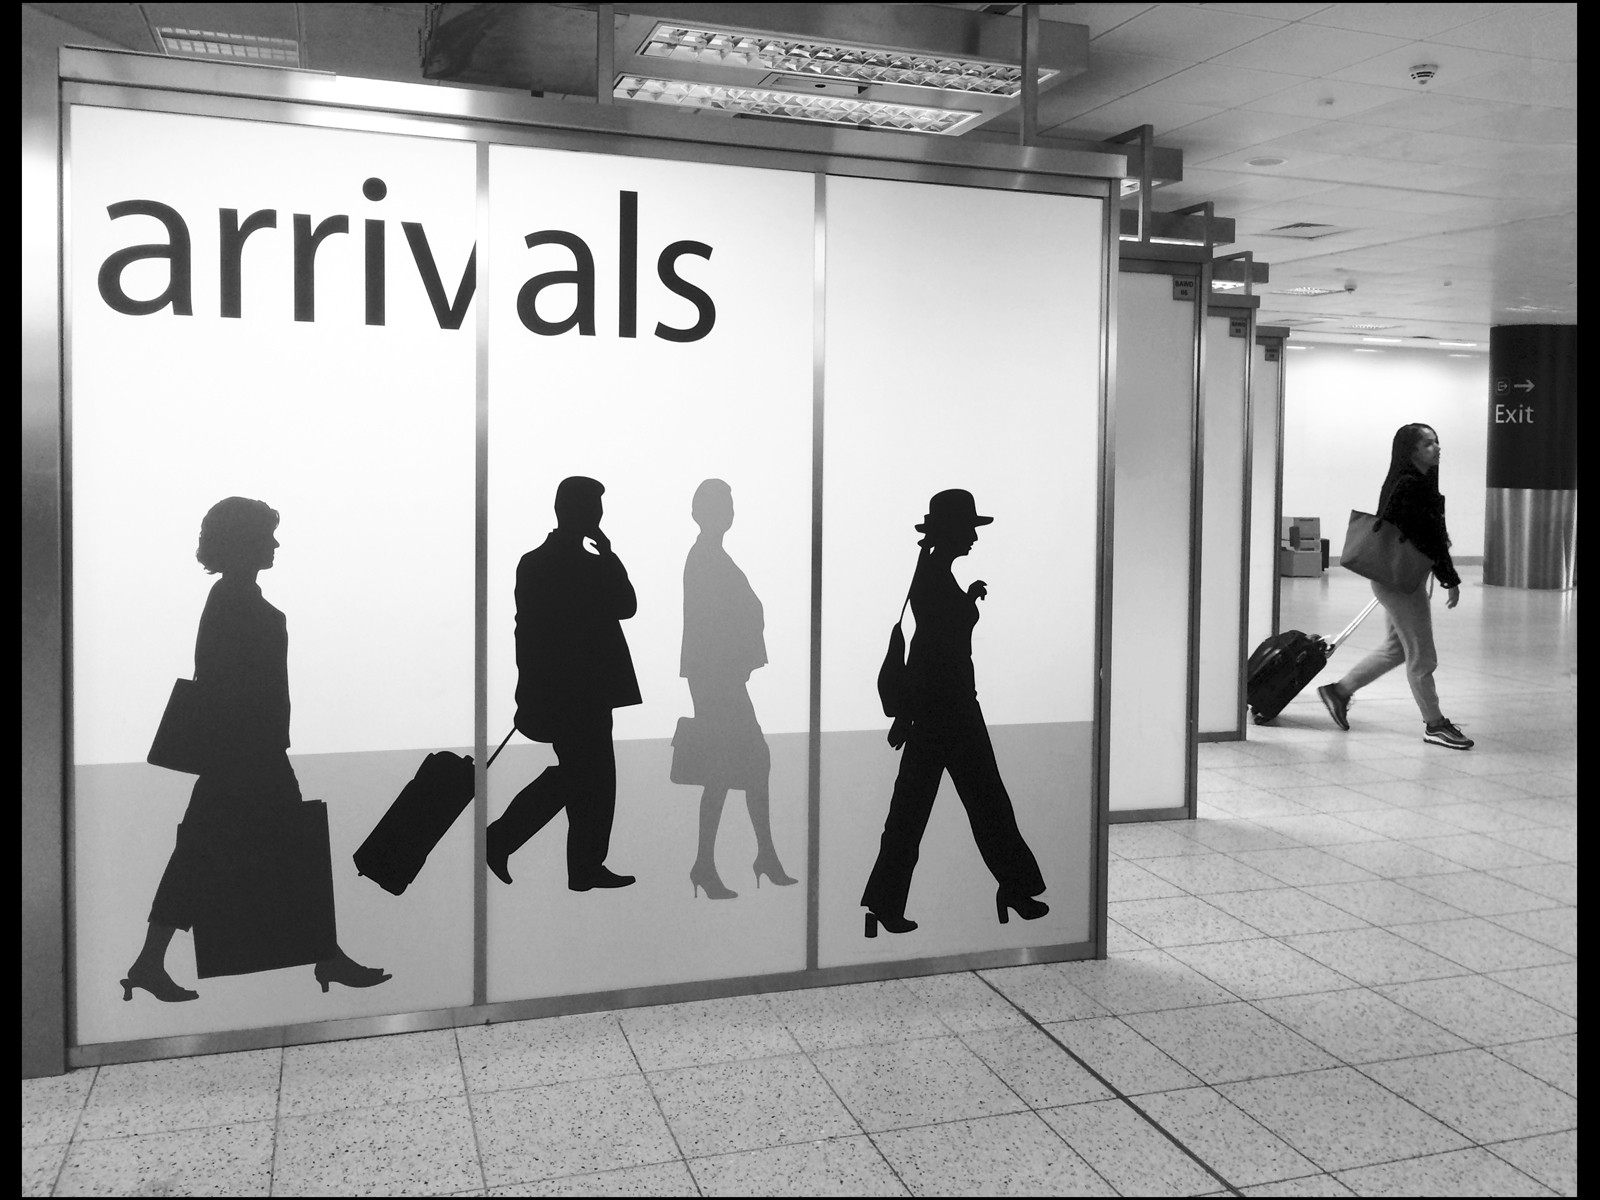 MONO - Arrival by Ruth Nicholls (16 marks)